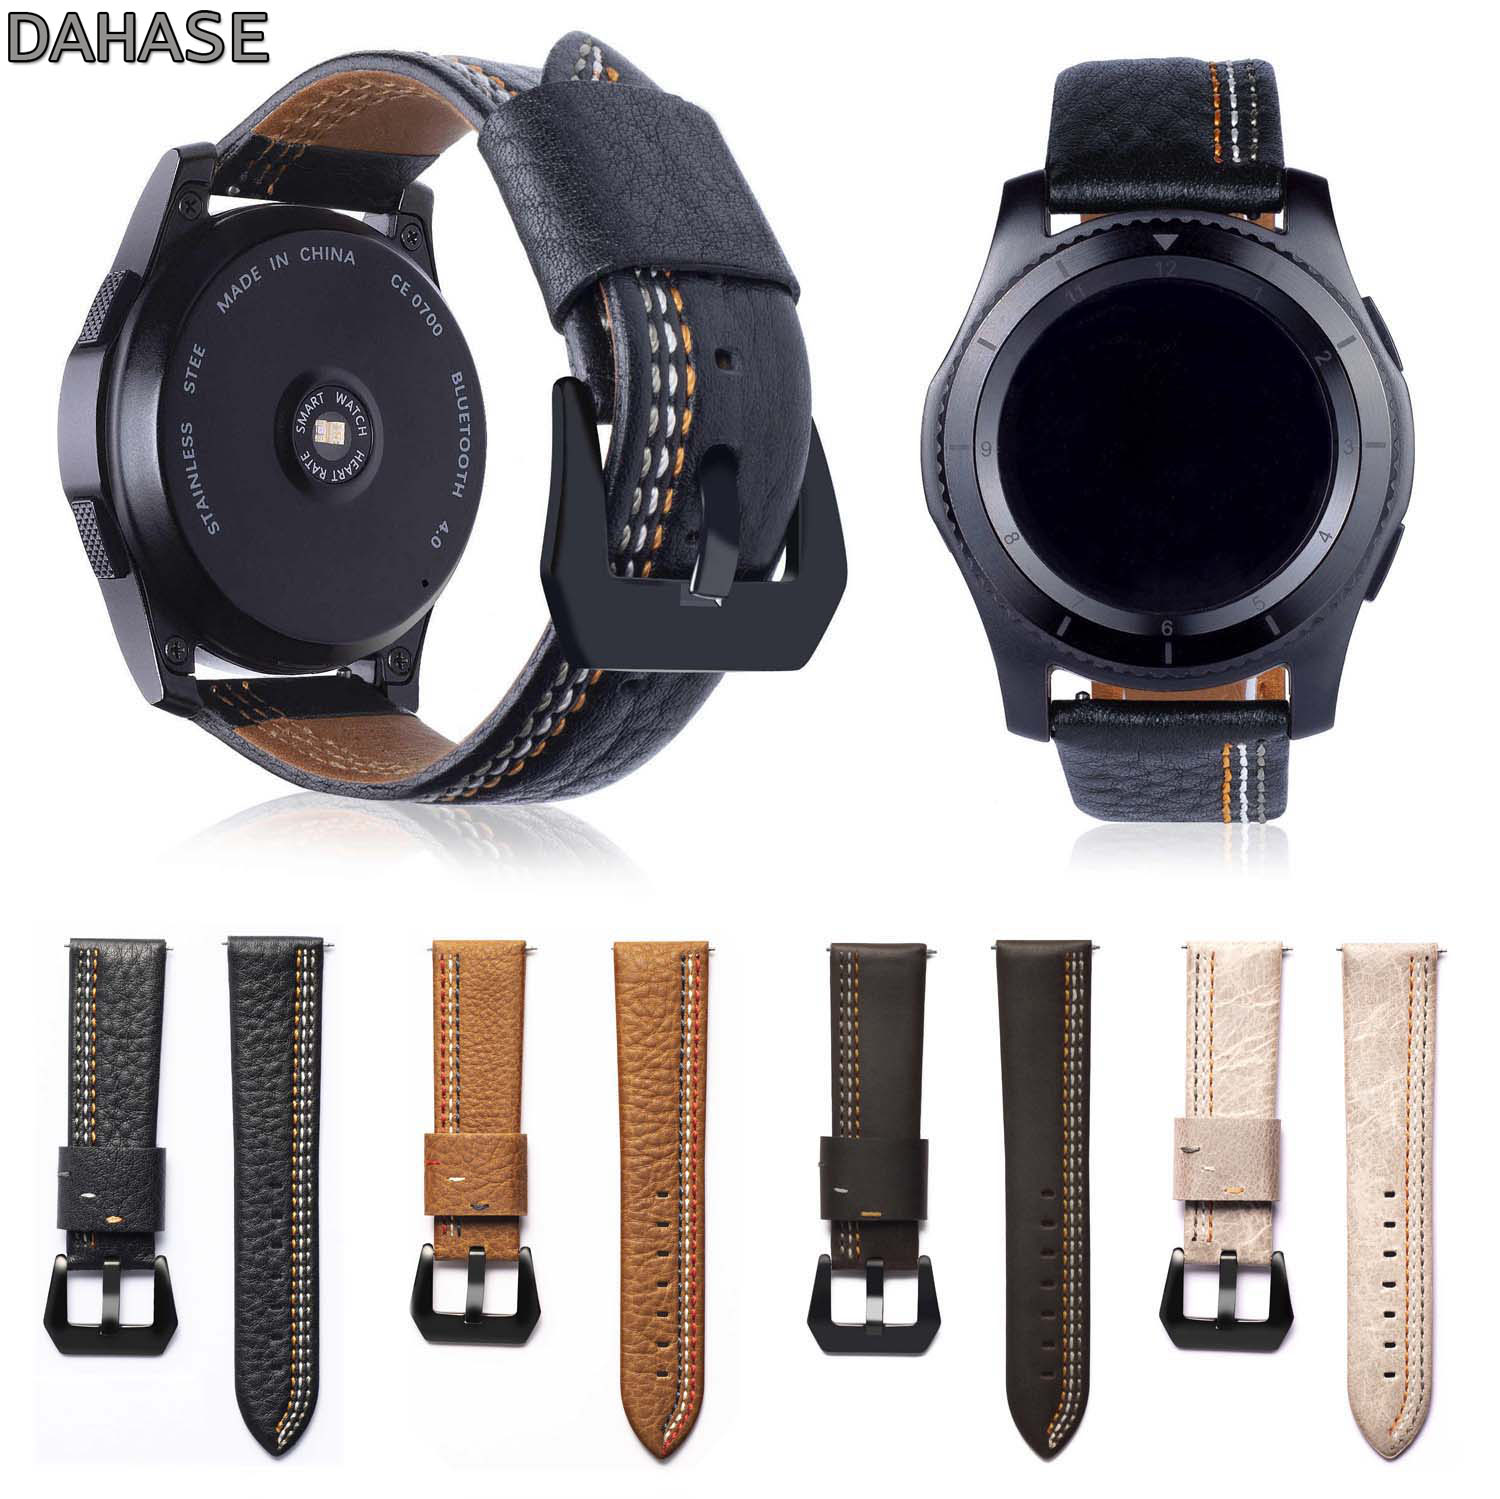 DAHASE Genuine Leather Watch Strap For Samsung Gear S3 Band Replacement Watch Bracelet For Gear S3 Classic Frontier 22mm gear s3 frontier classic watch band 22mm soft silicone man watch replacement bracelet strap for samsung gear s3